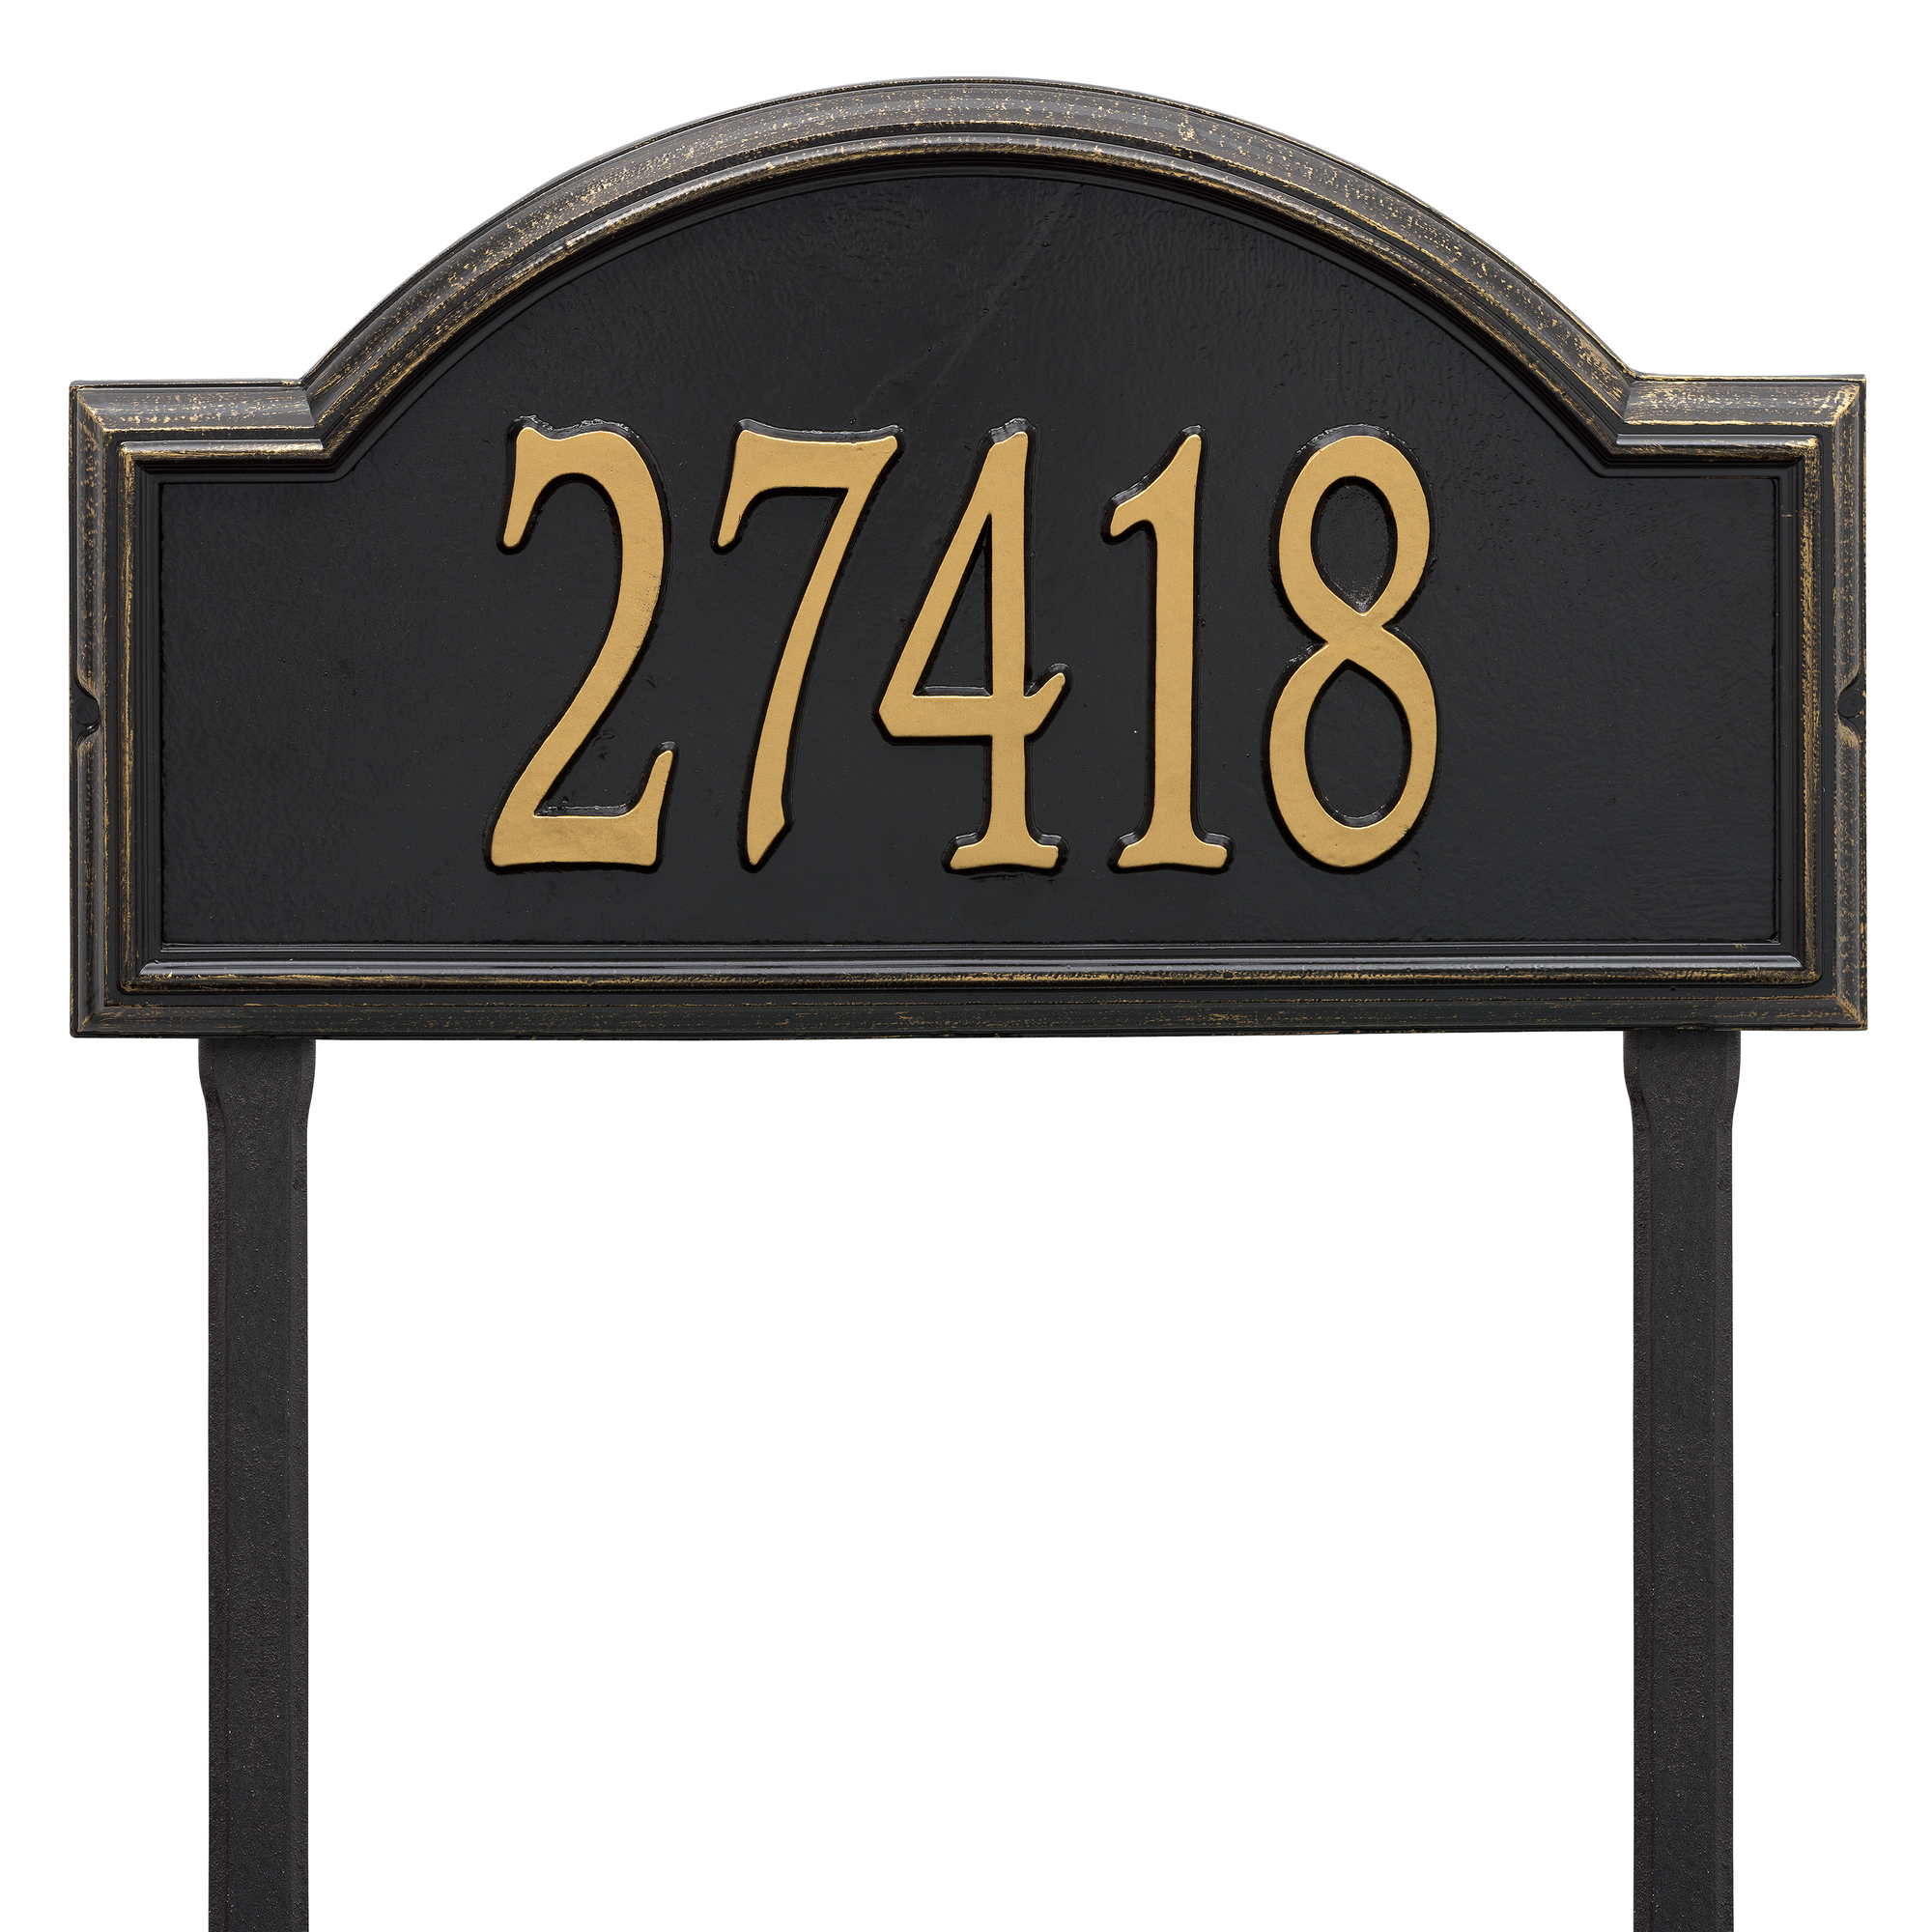 Personalized Whitehall Products Providence Arch Address Plaque in Black Gold by Whitehall